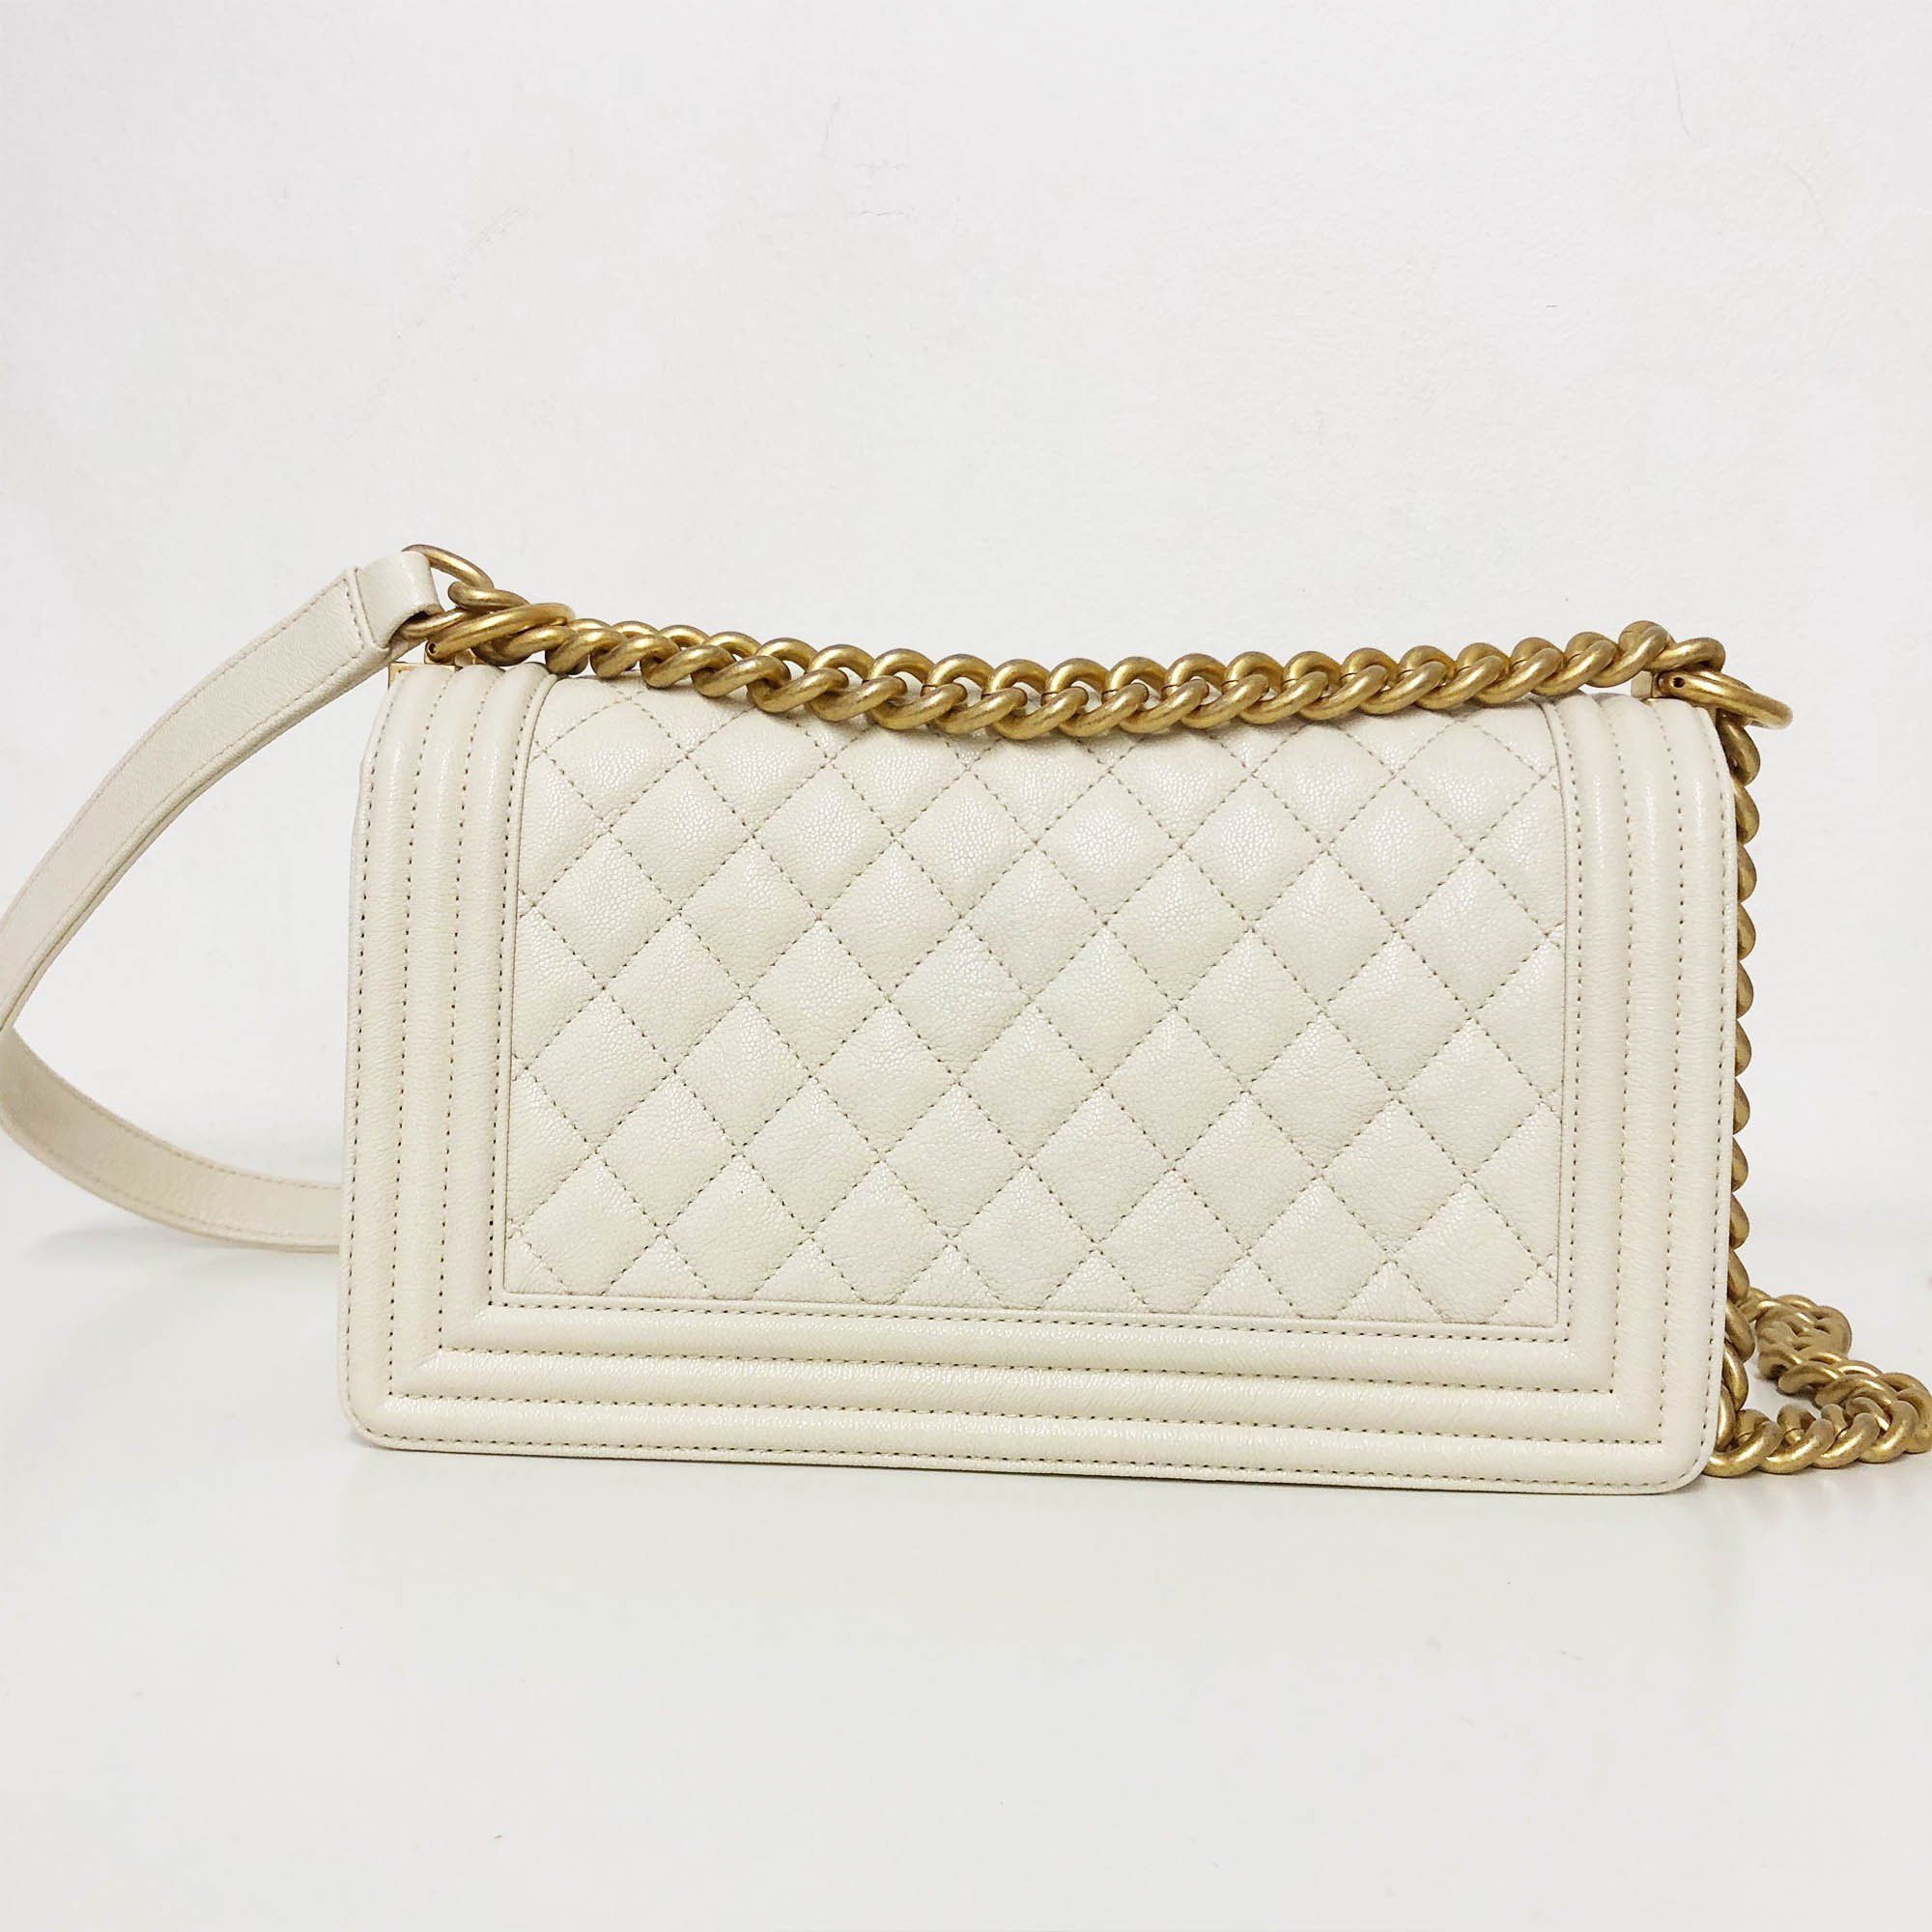 Chanel Off-White Quilted Caviar GHW Medium Le Boy Bag